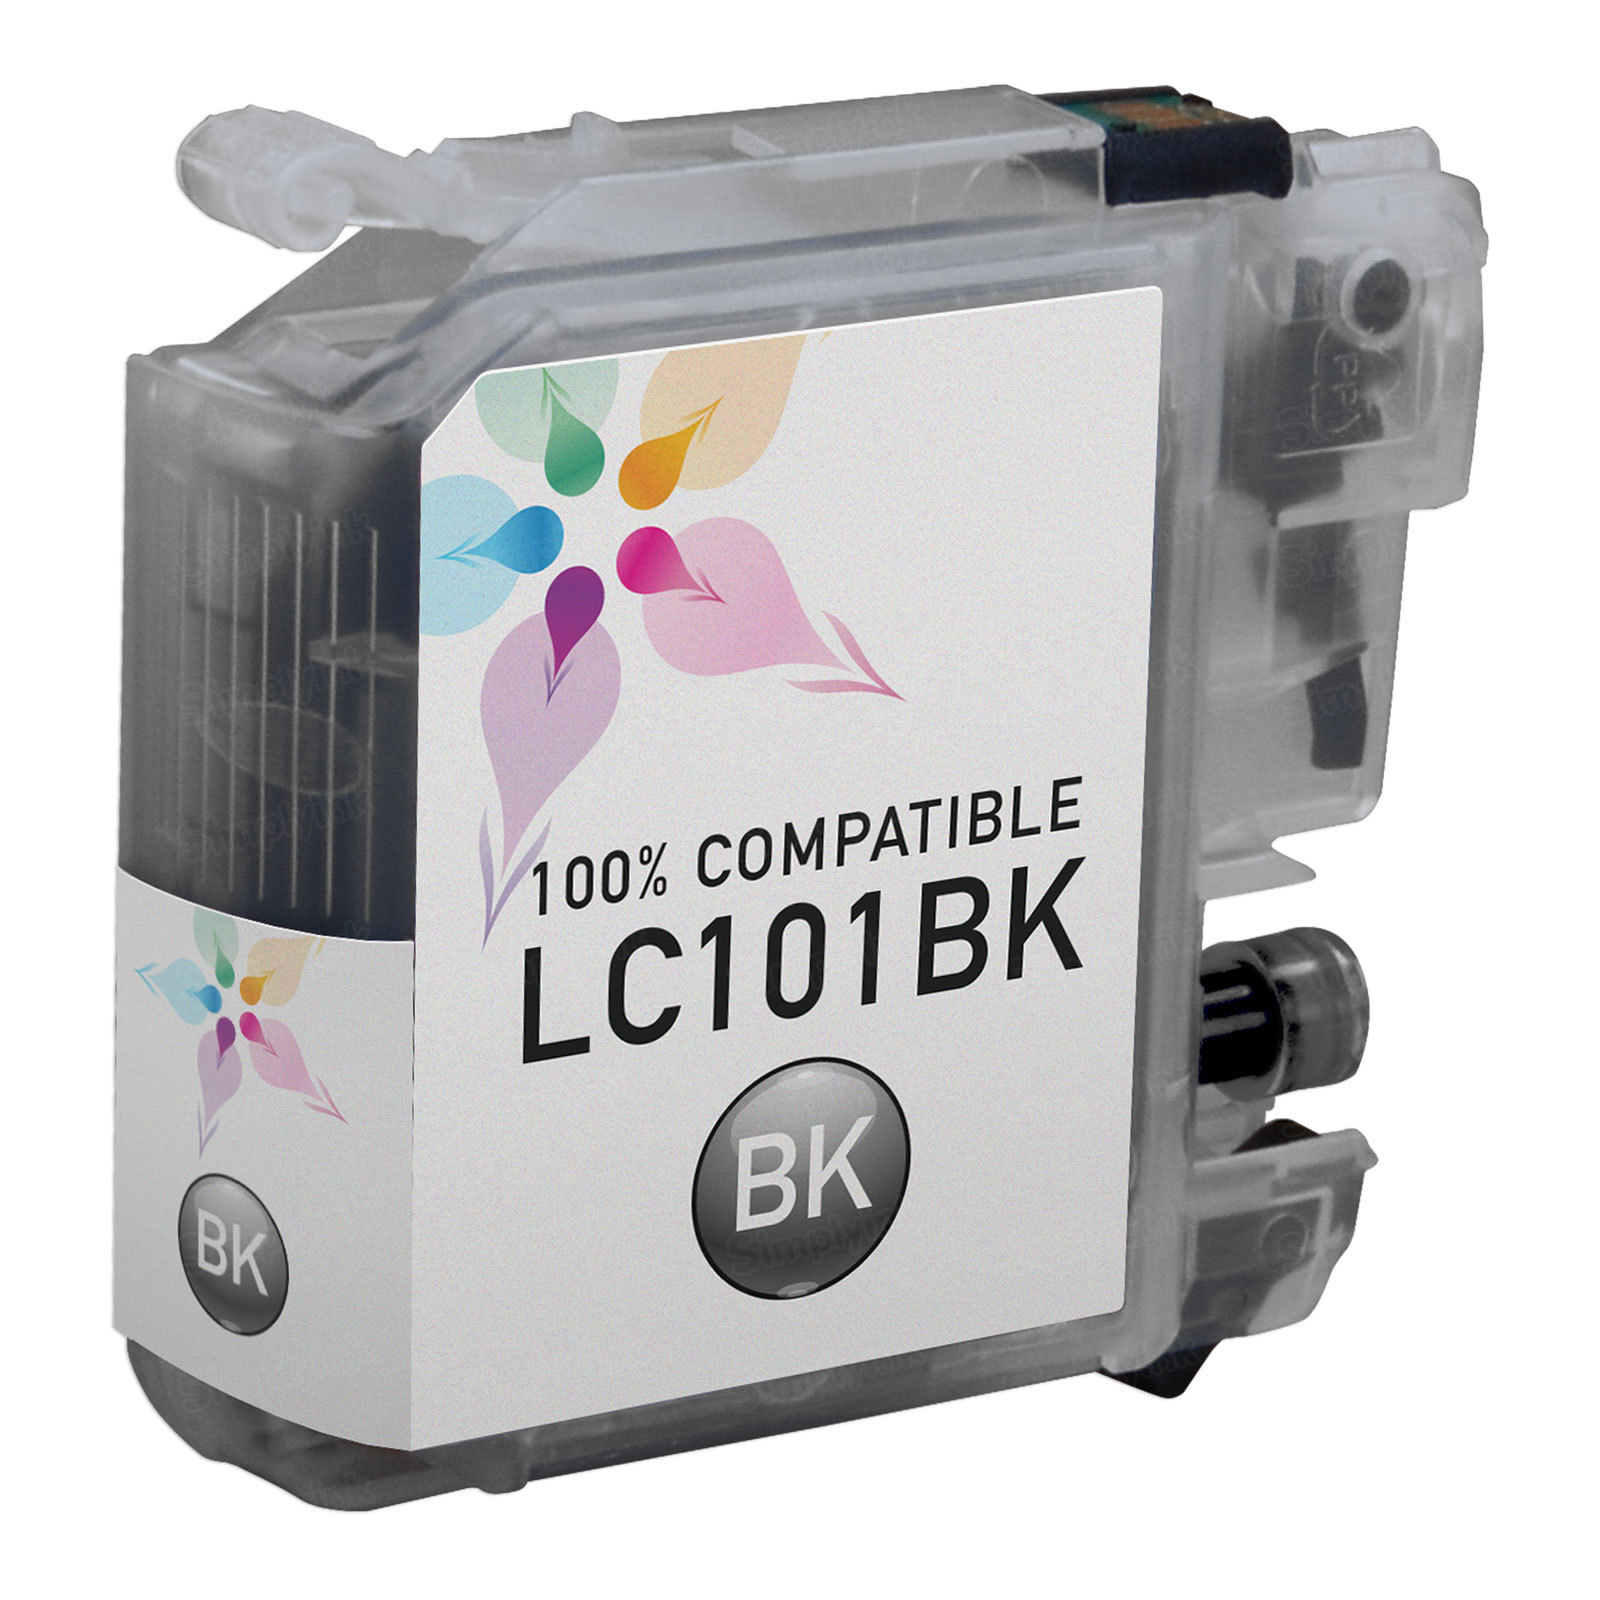 Brother Compatible LC101BK Black Ink